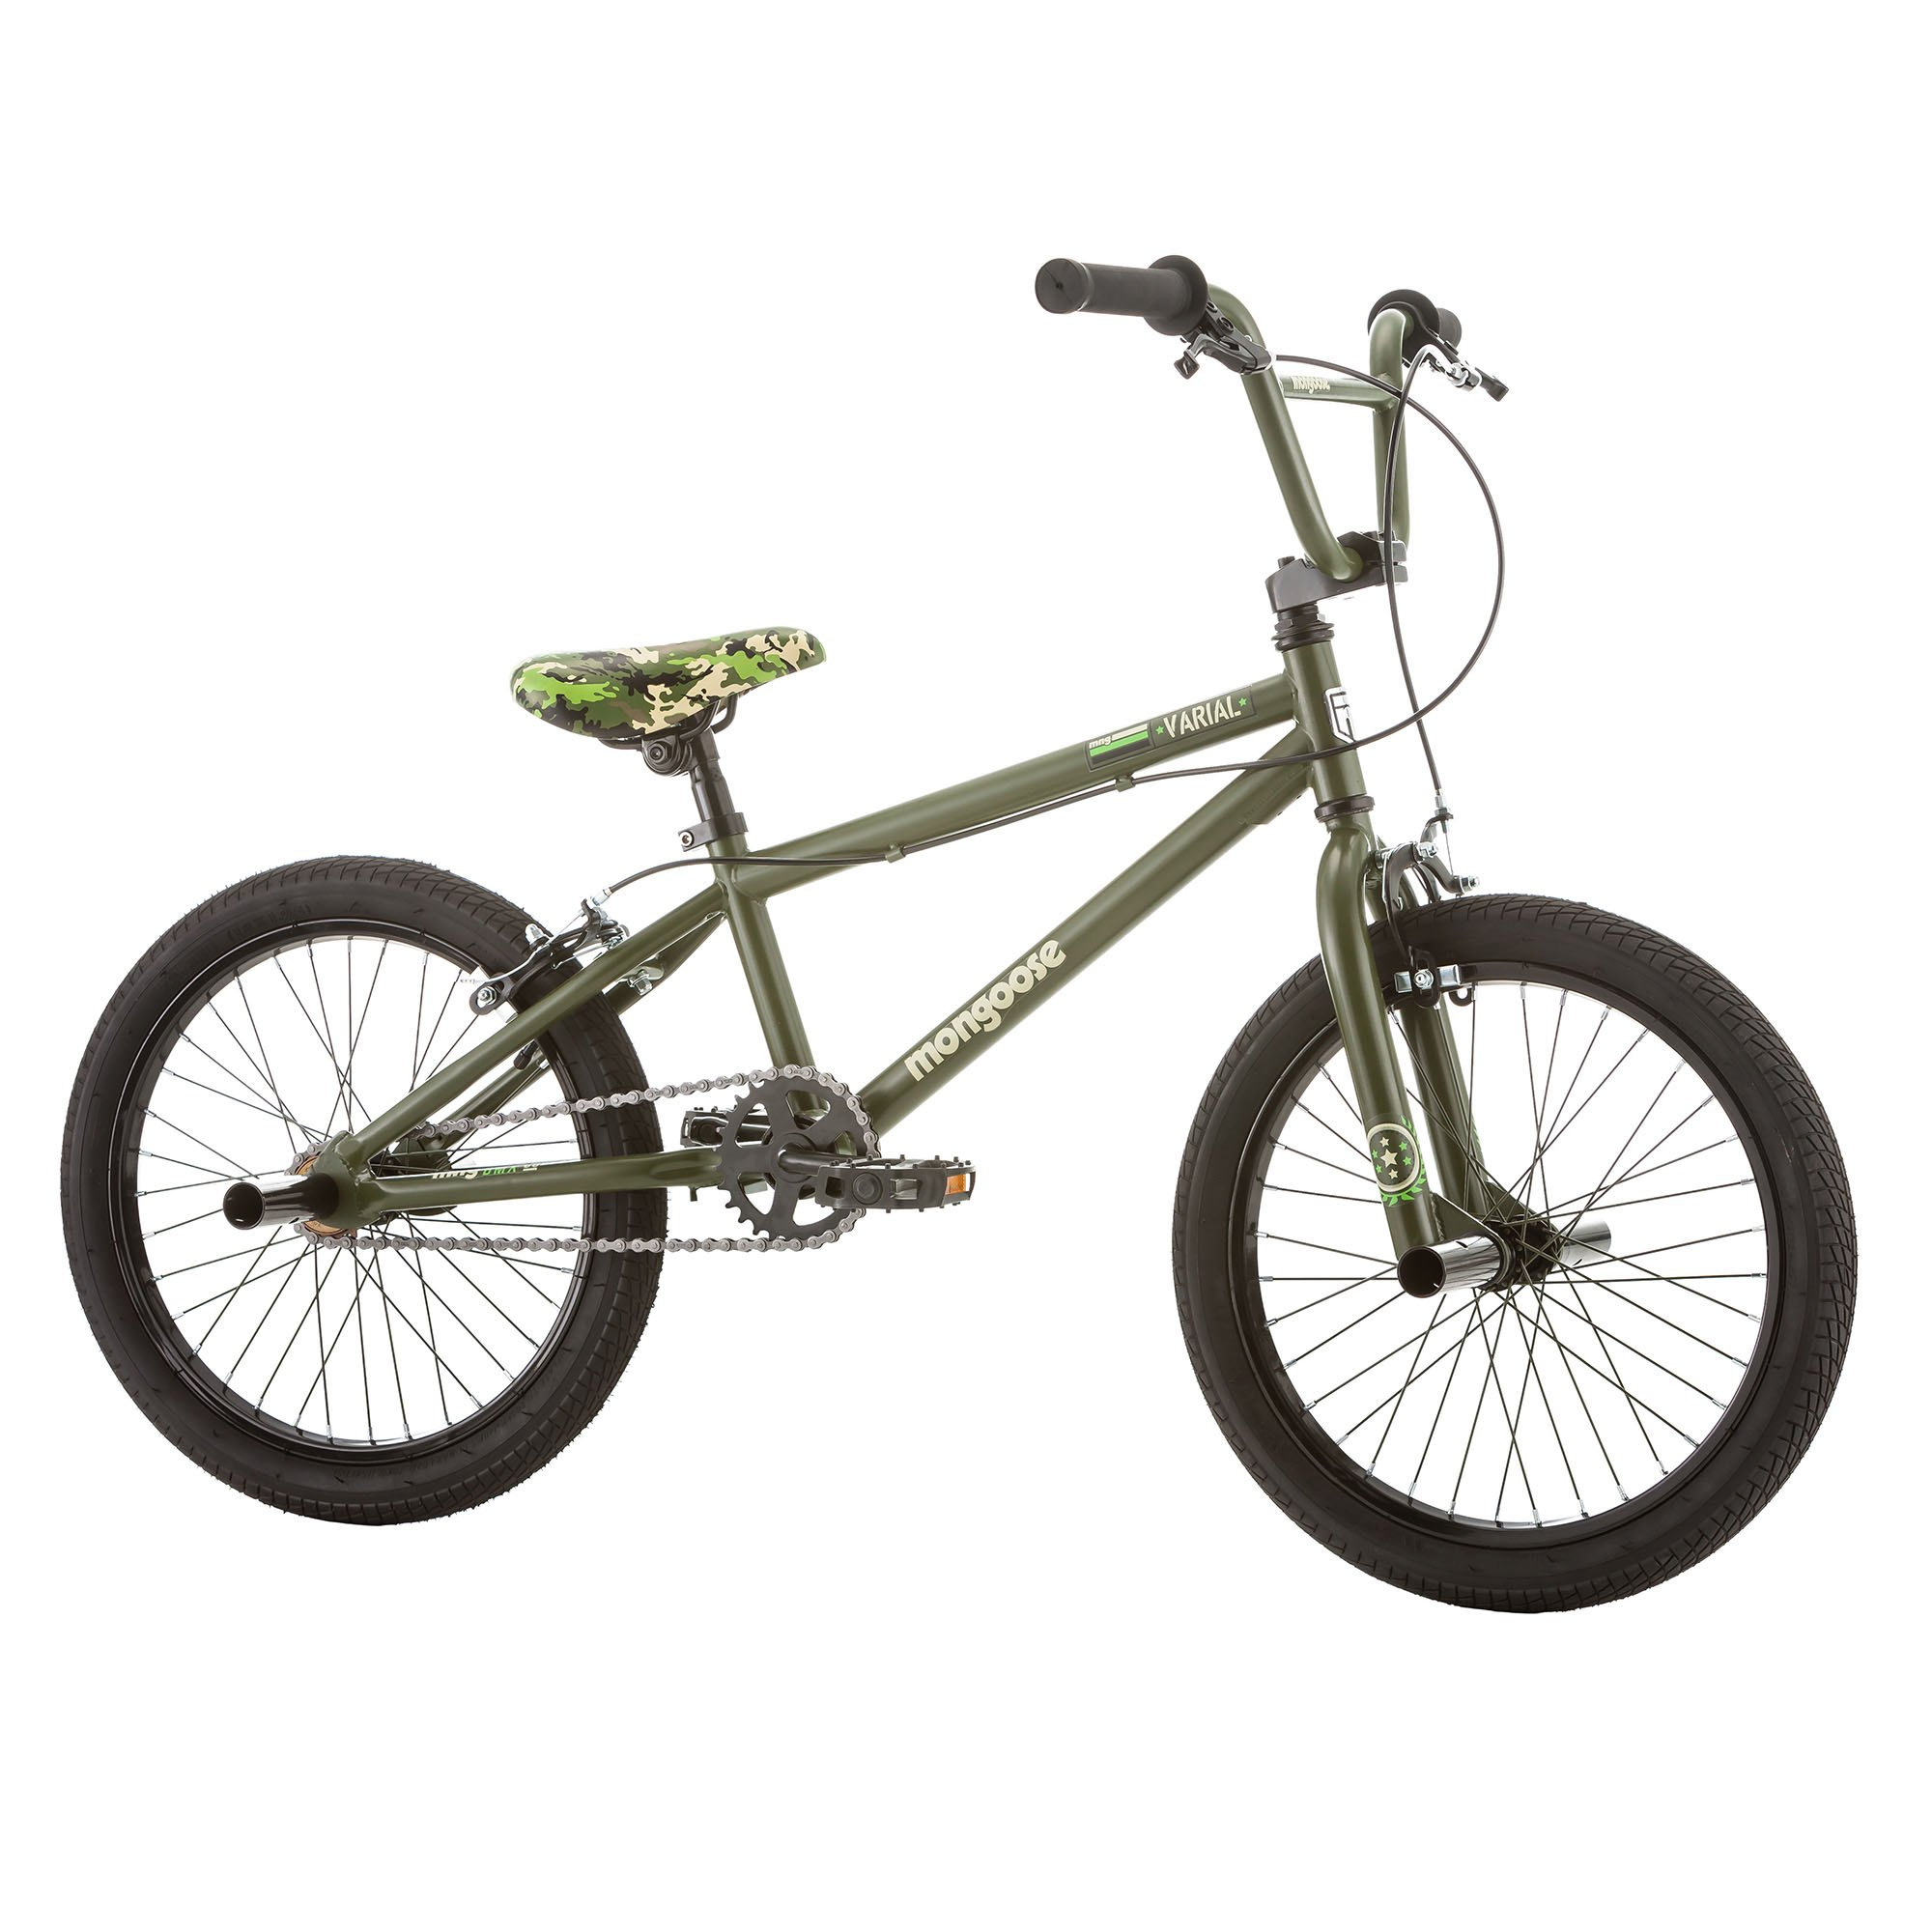 Cheap 30 Inch Bmx Find 30 Inch Bmx Deals On Line At Alibaba Com